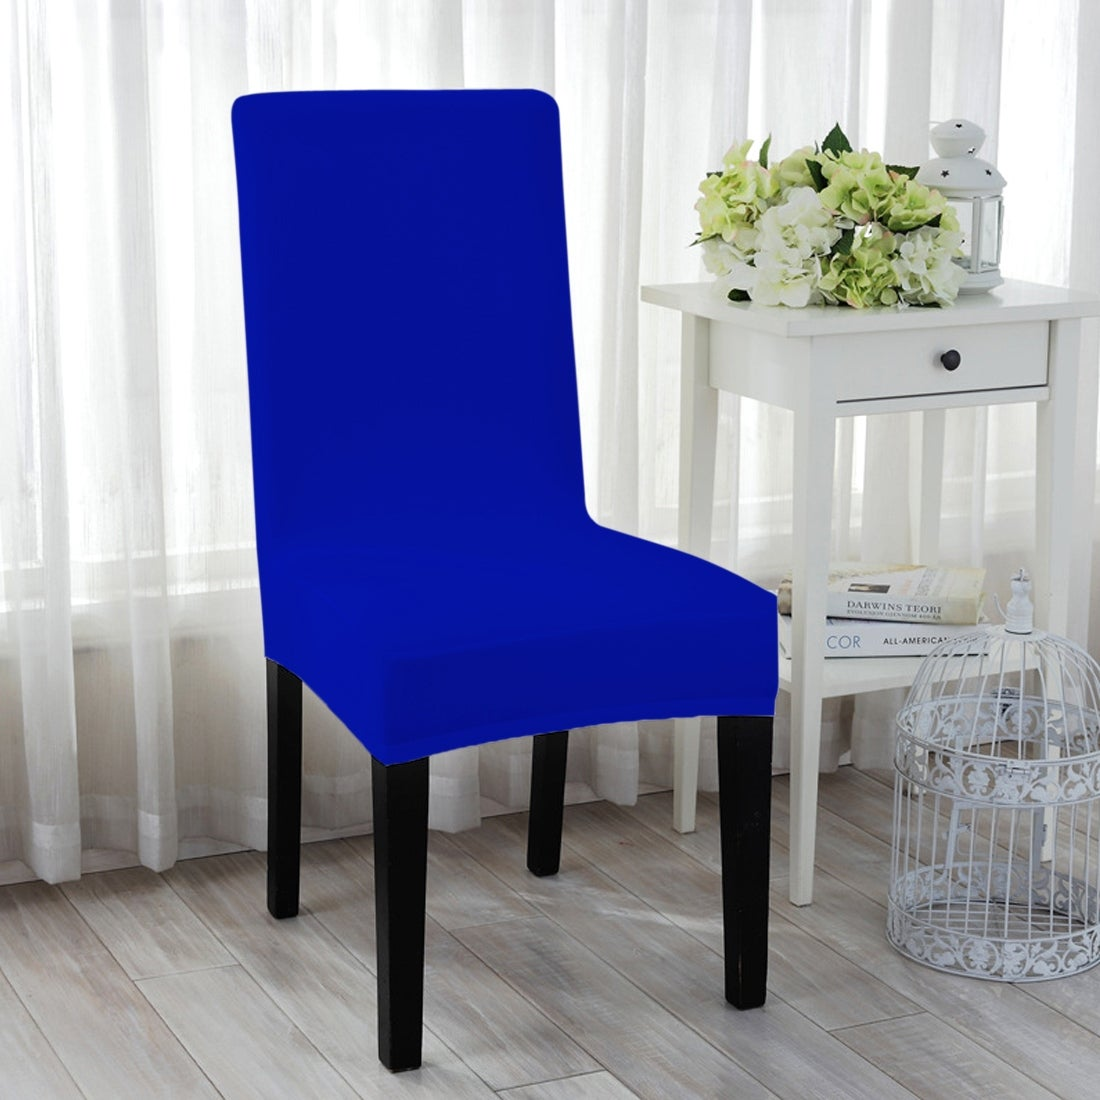 dining chair covers - 736×736